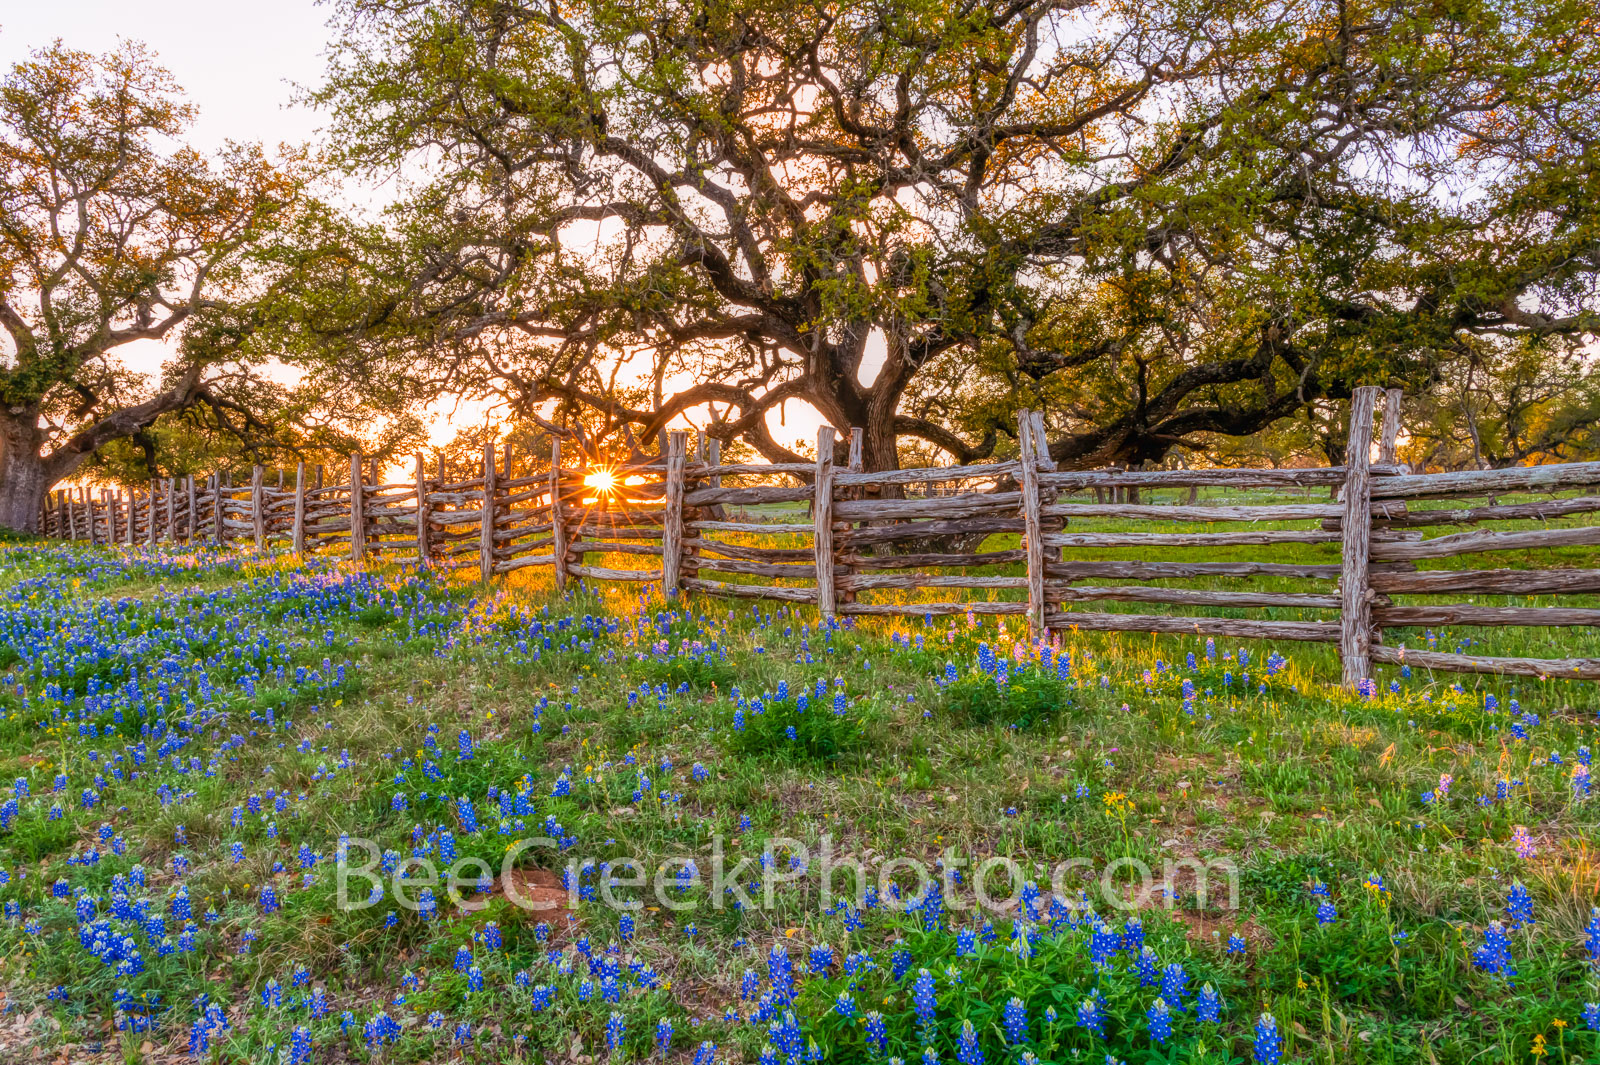 texas bluebonnets, texas wildflowers, sunset, sun rays, cedar fence, bluebonnents, texas hill country, wildflowers, oak tree, hill country, bluebonnets,